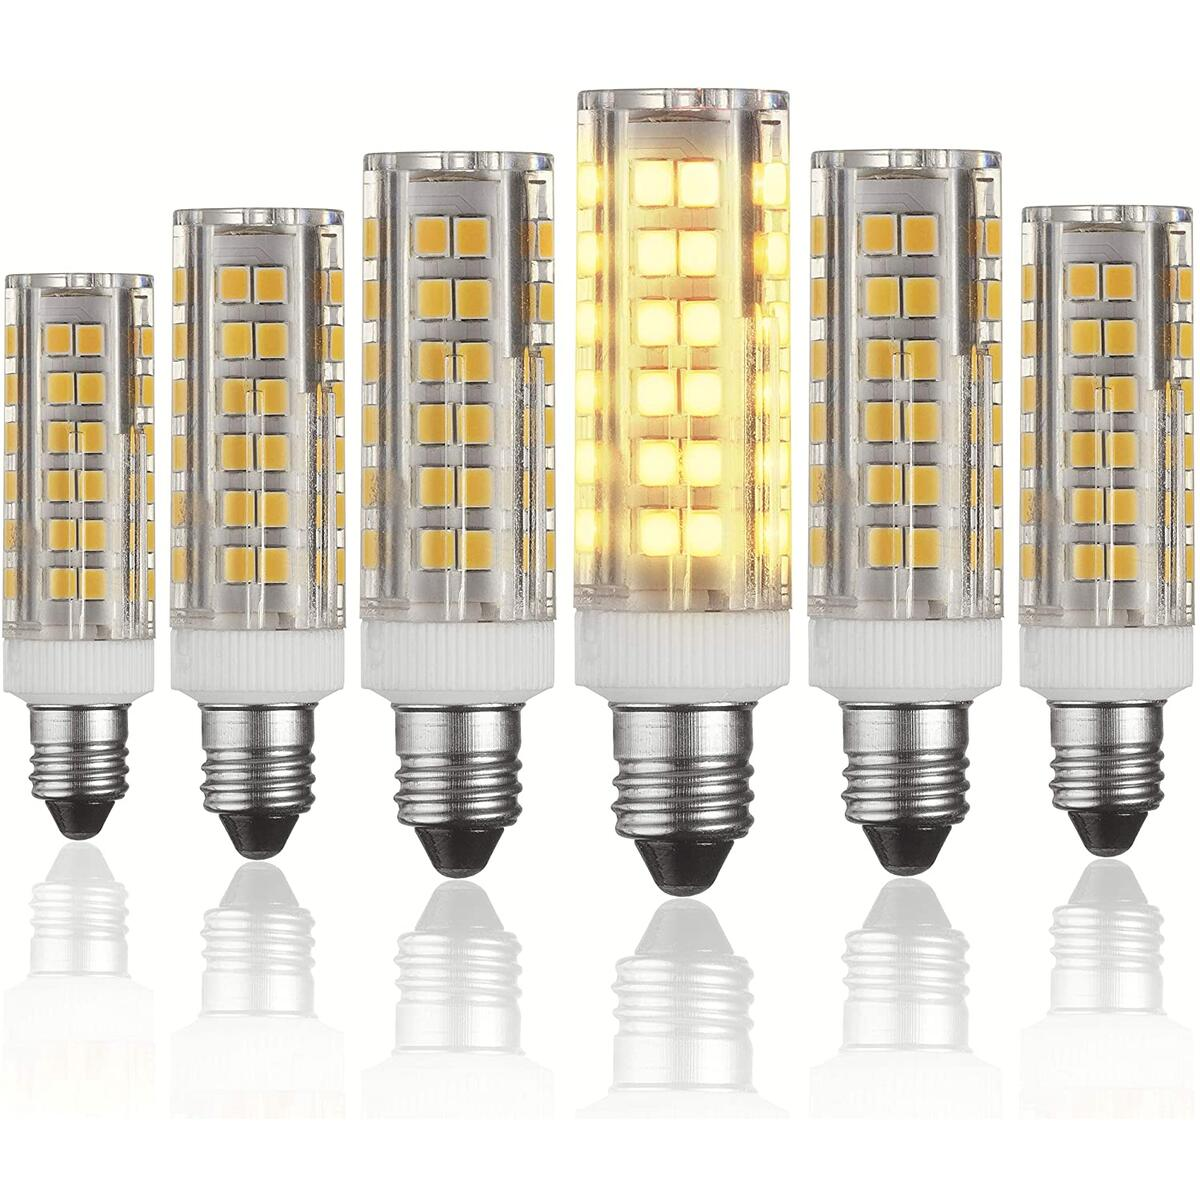 E11 LED Bulbs – 5W - 50W Halogen Replacement - Dimmable - Mini-Candelabra Base Light Bulb - Replaces T4 /T3 JDE11 - Warm White 3000K - for Ceiling Fans, Cabinet Lighting, Sconce & More- 6 Pack